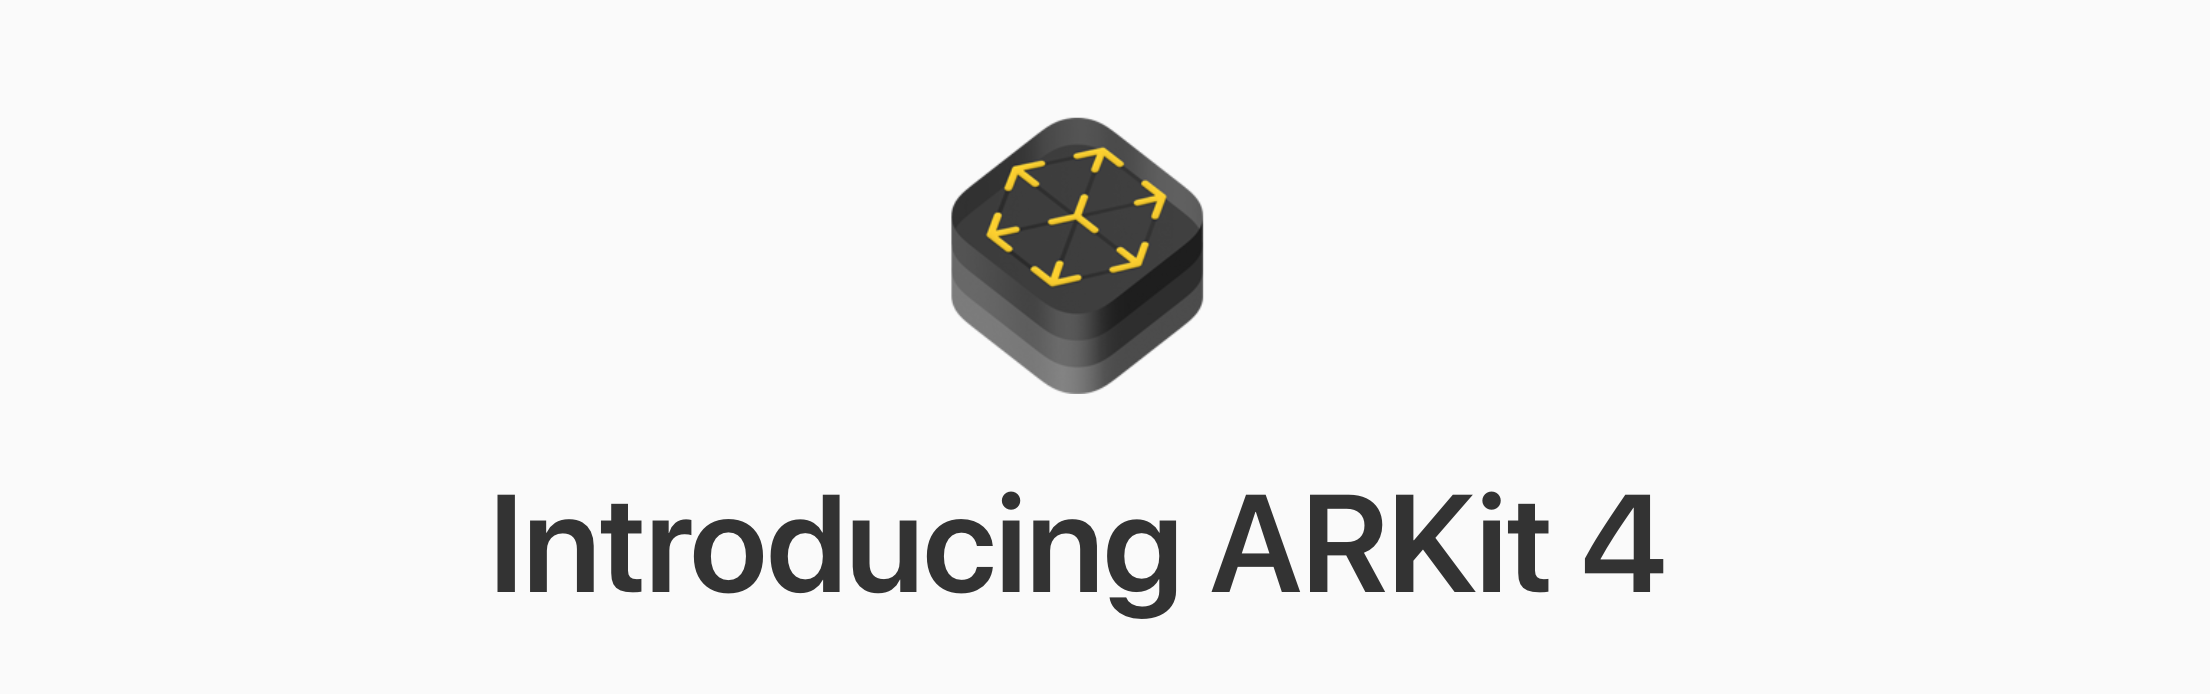 Apple ARKit 4